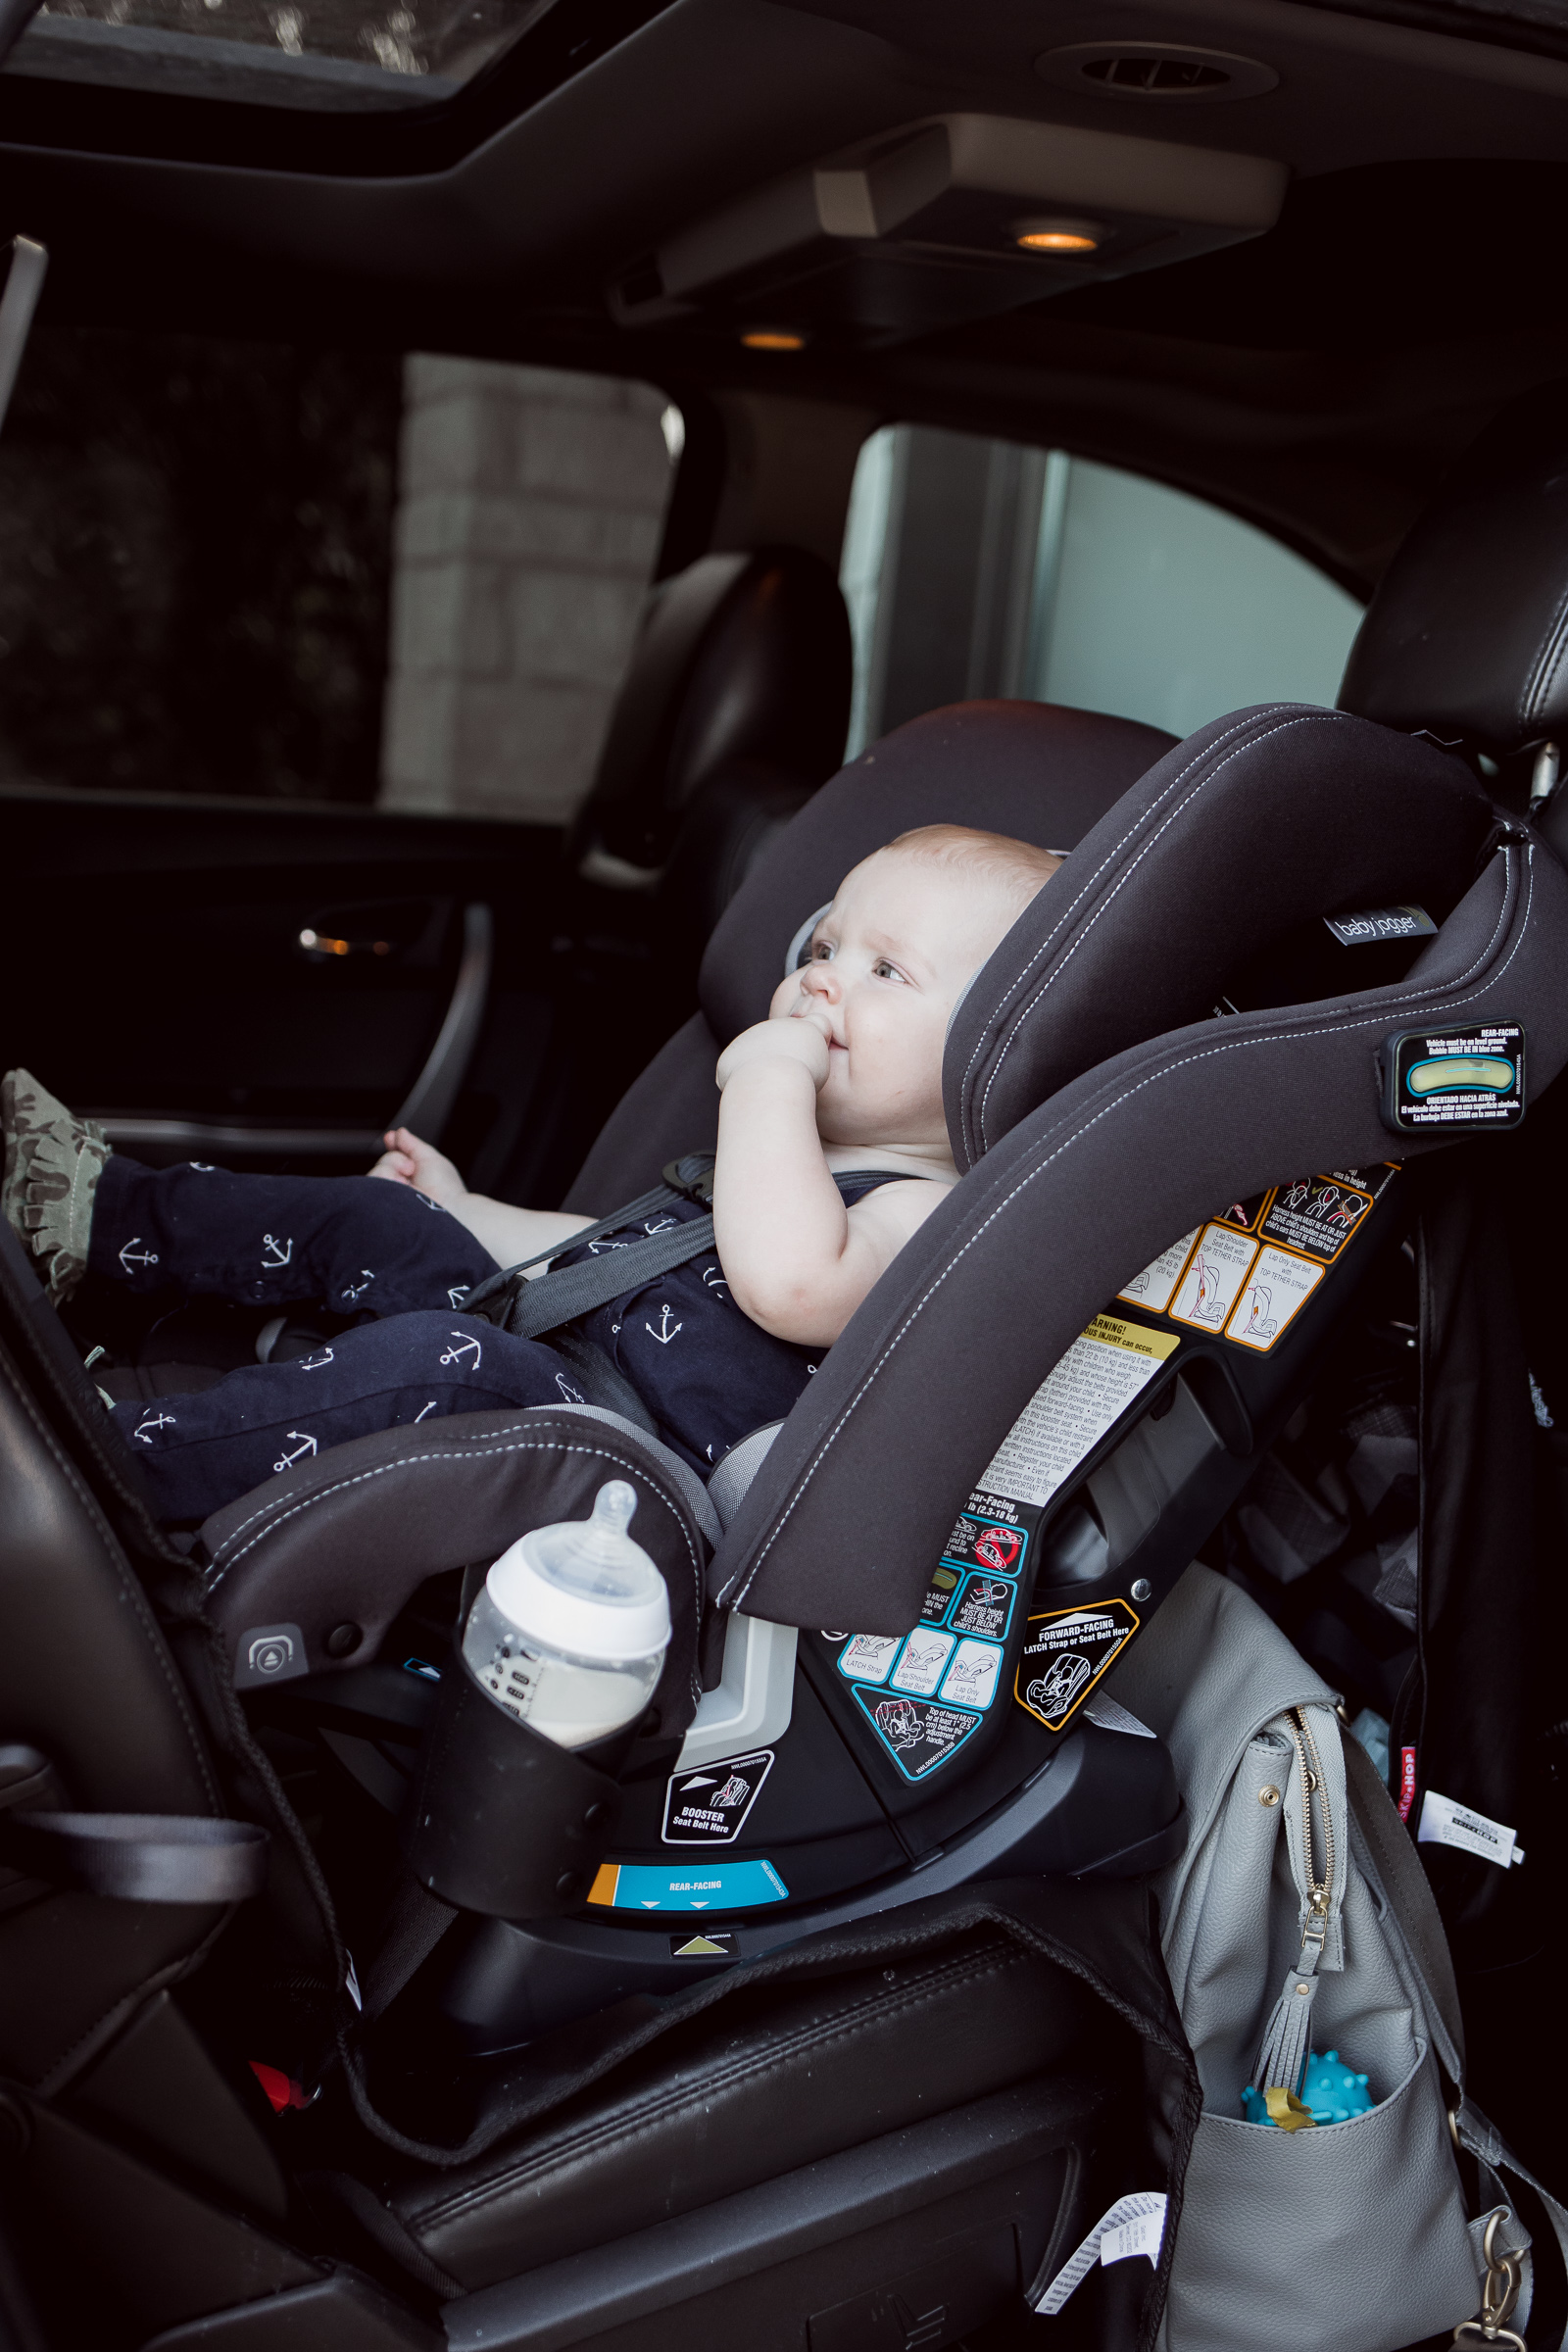 Houston Life Style Blogger Elly Brown from Uptown with Elly Brown shares why the Baby Jogger City View Car Seat is her favorite car seat